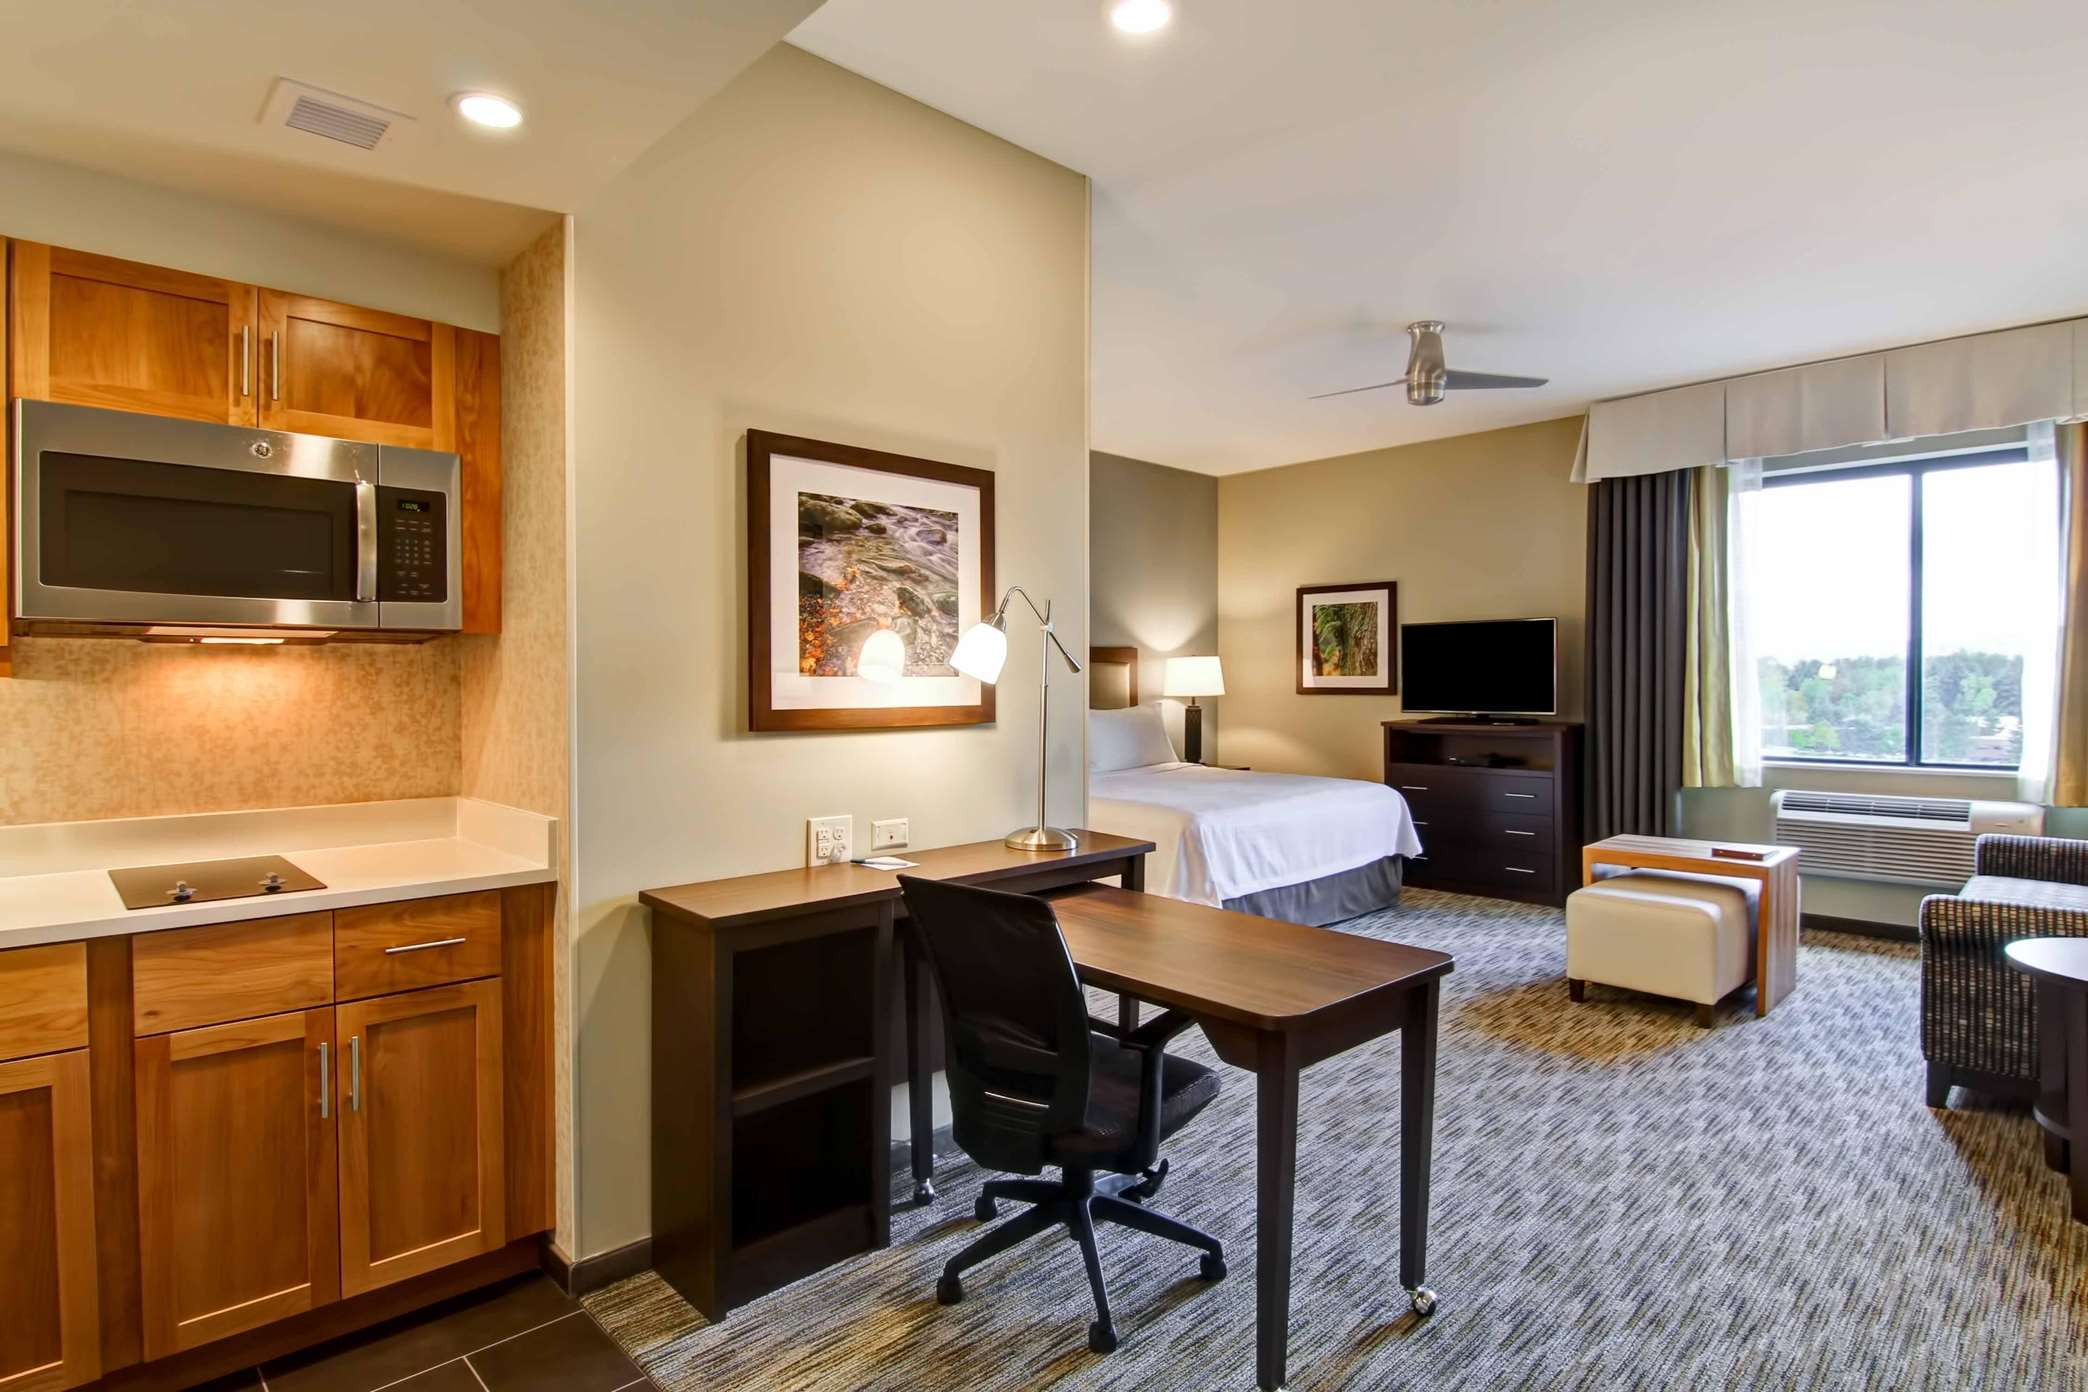 Homewood Suites by Hilton Seattle-Issaquah image 28